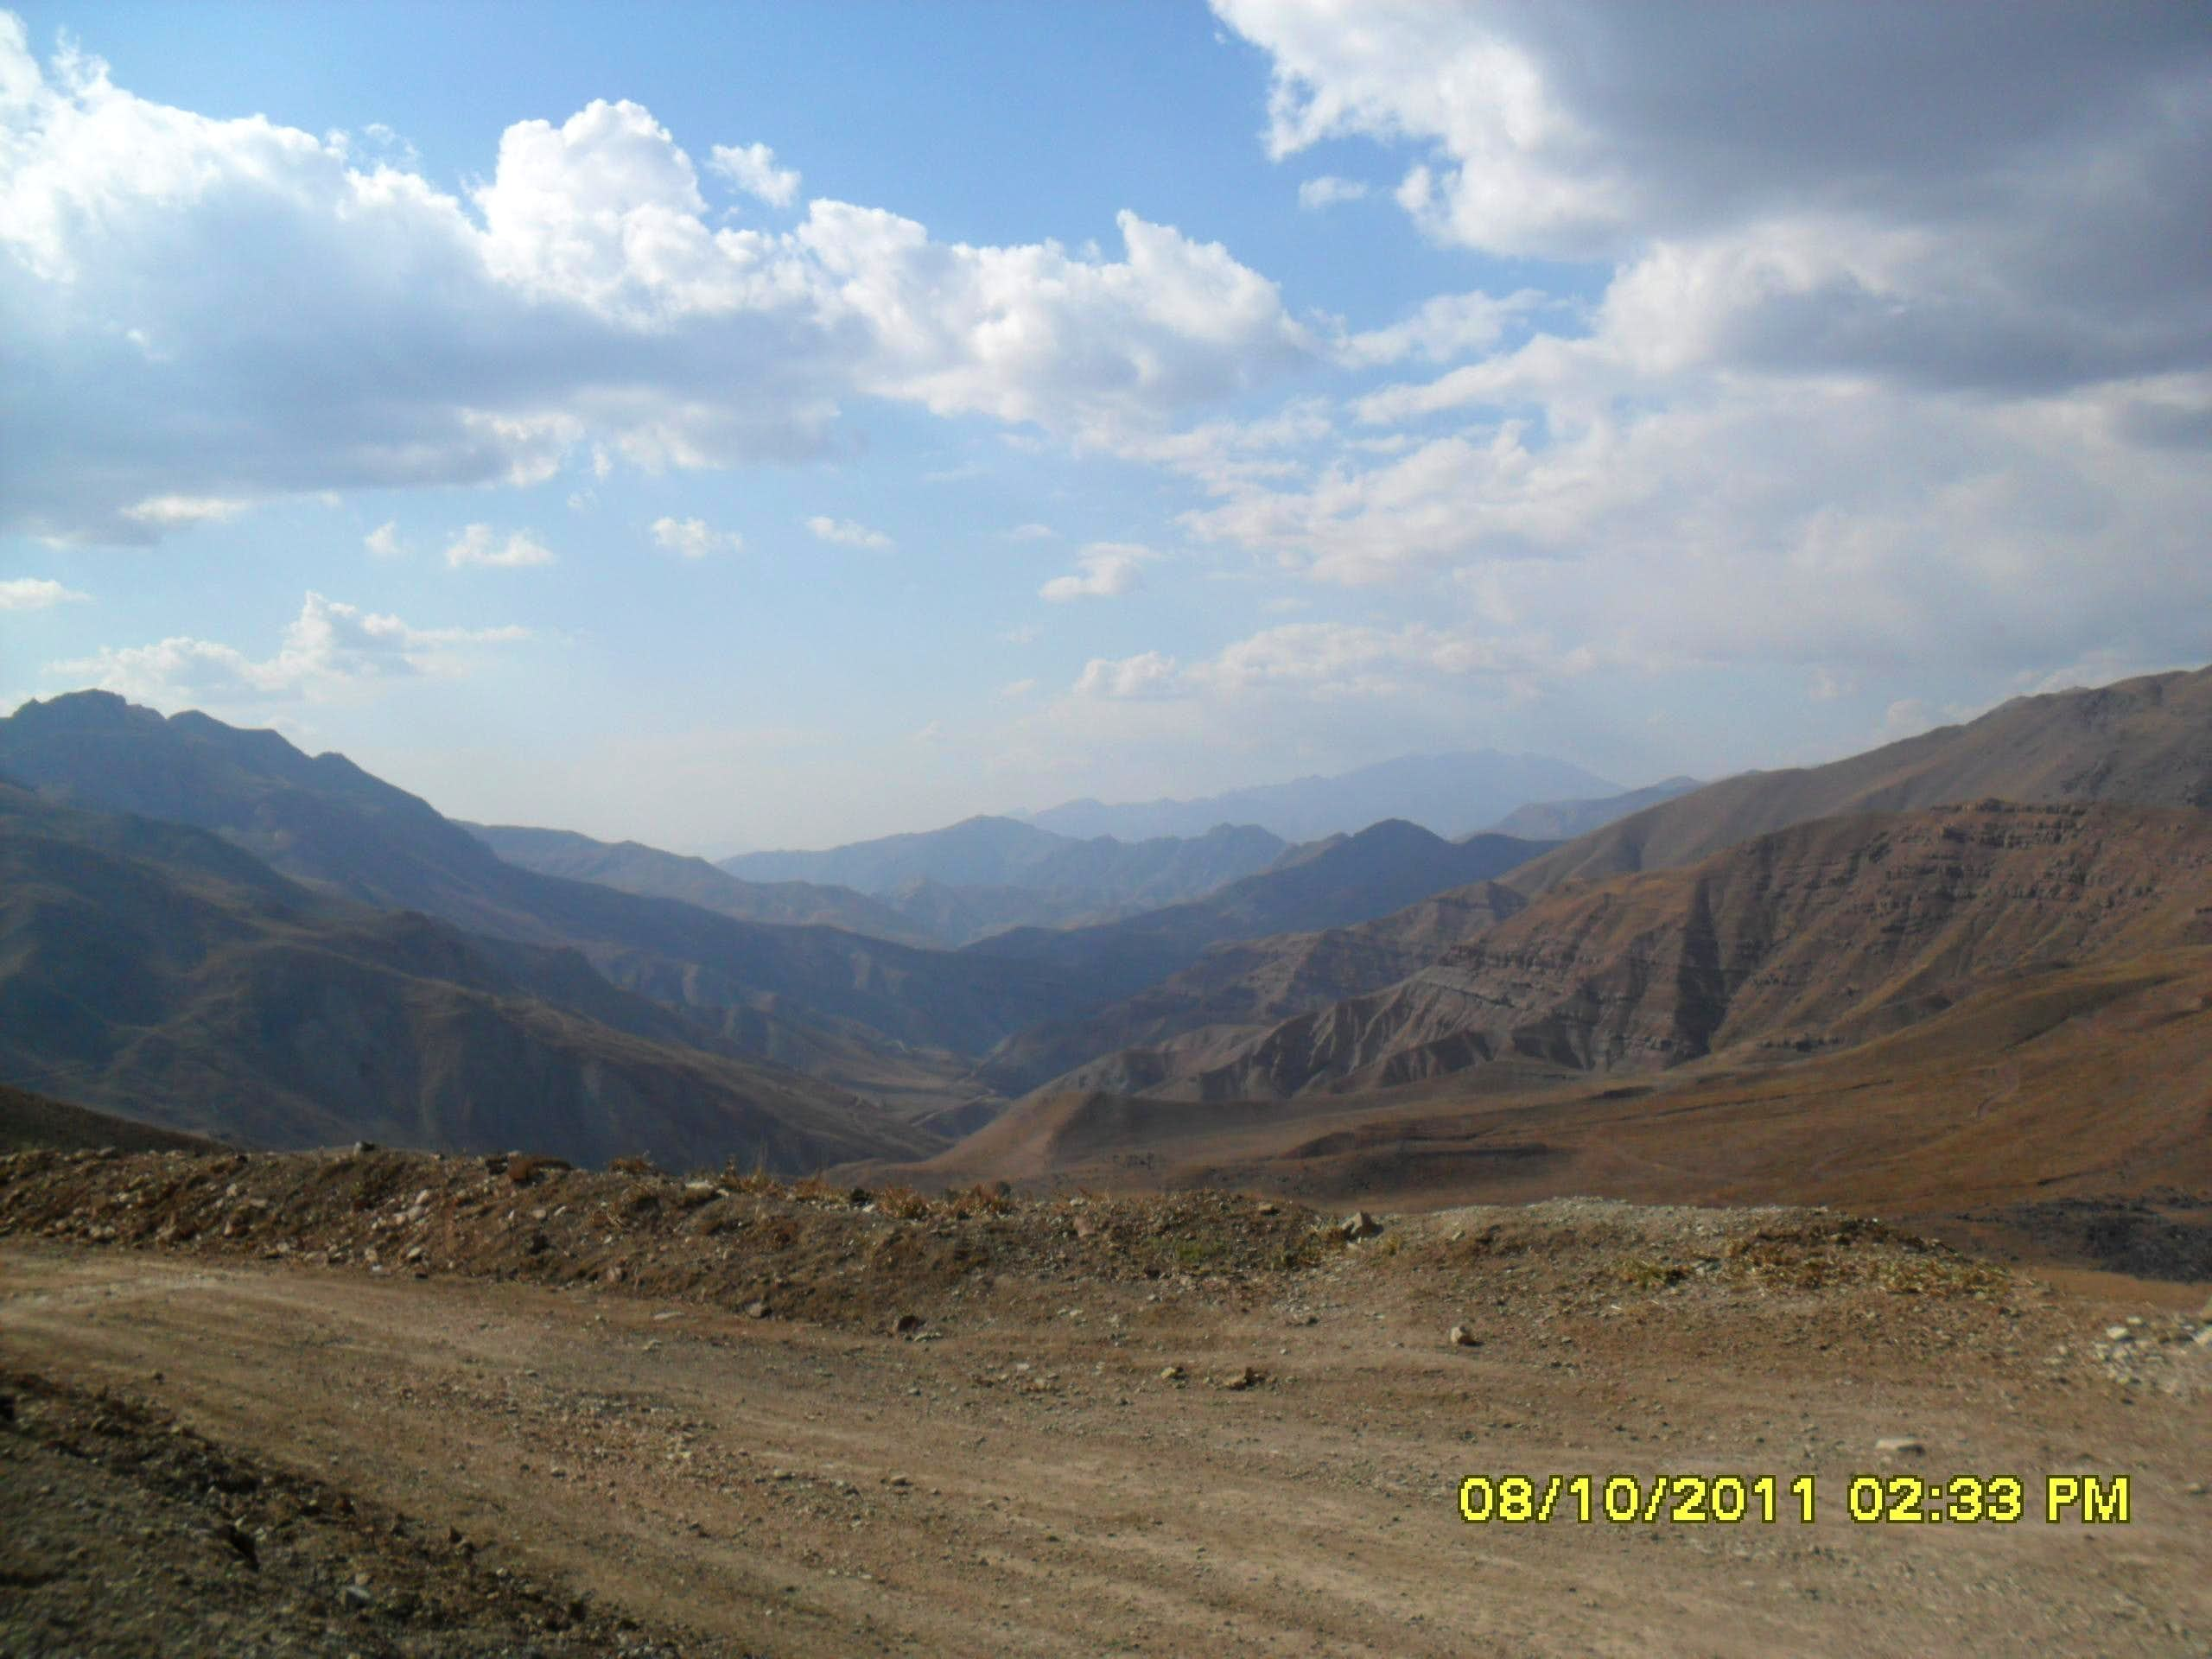 around the alborz mountains